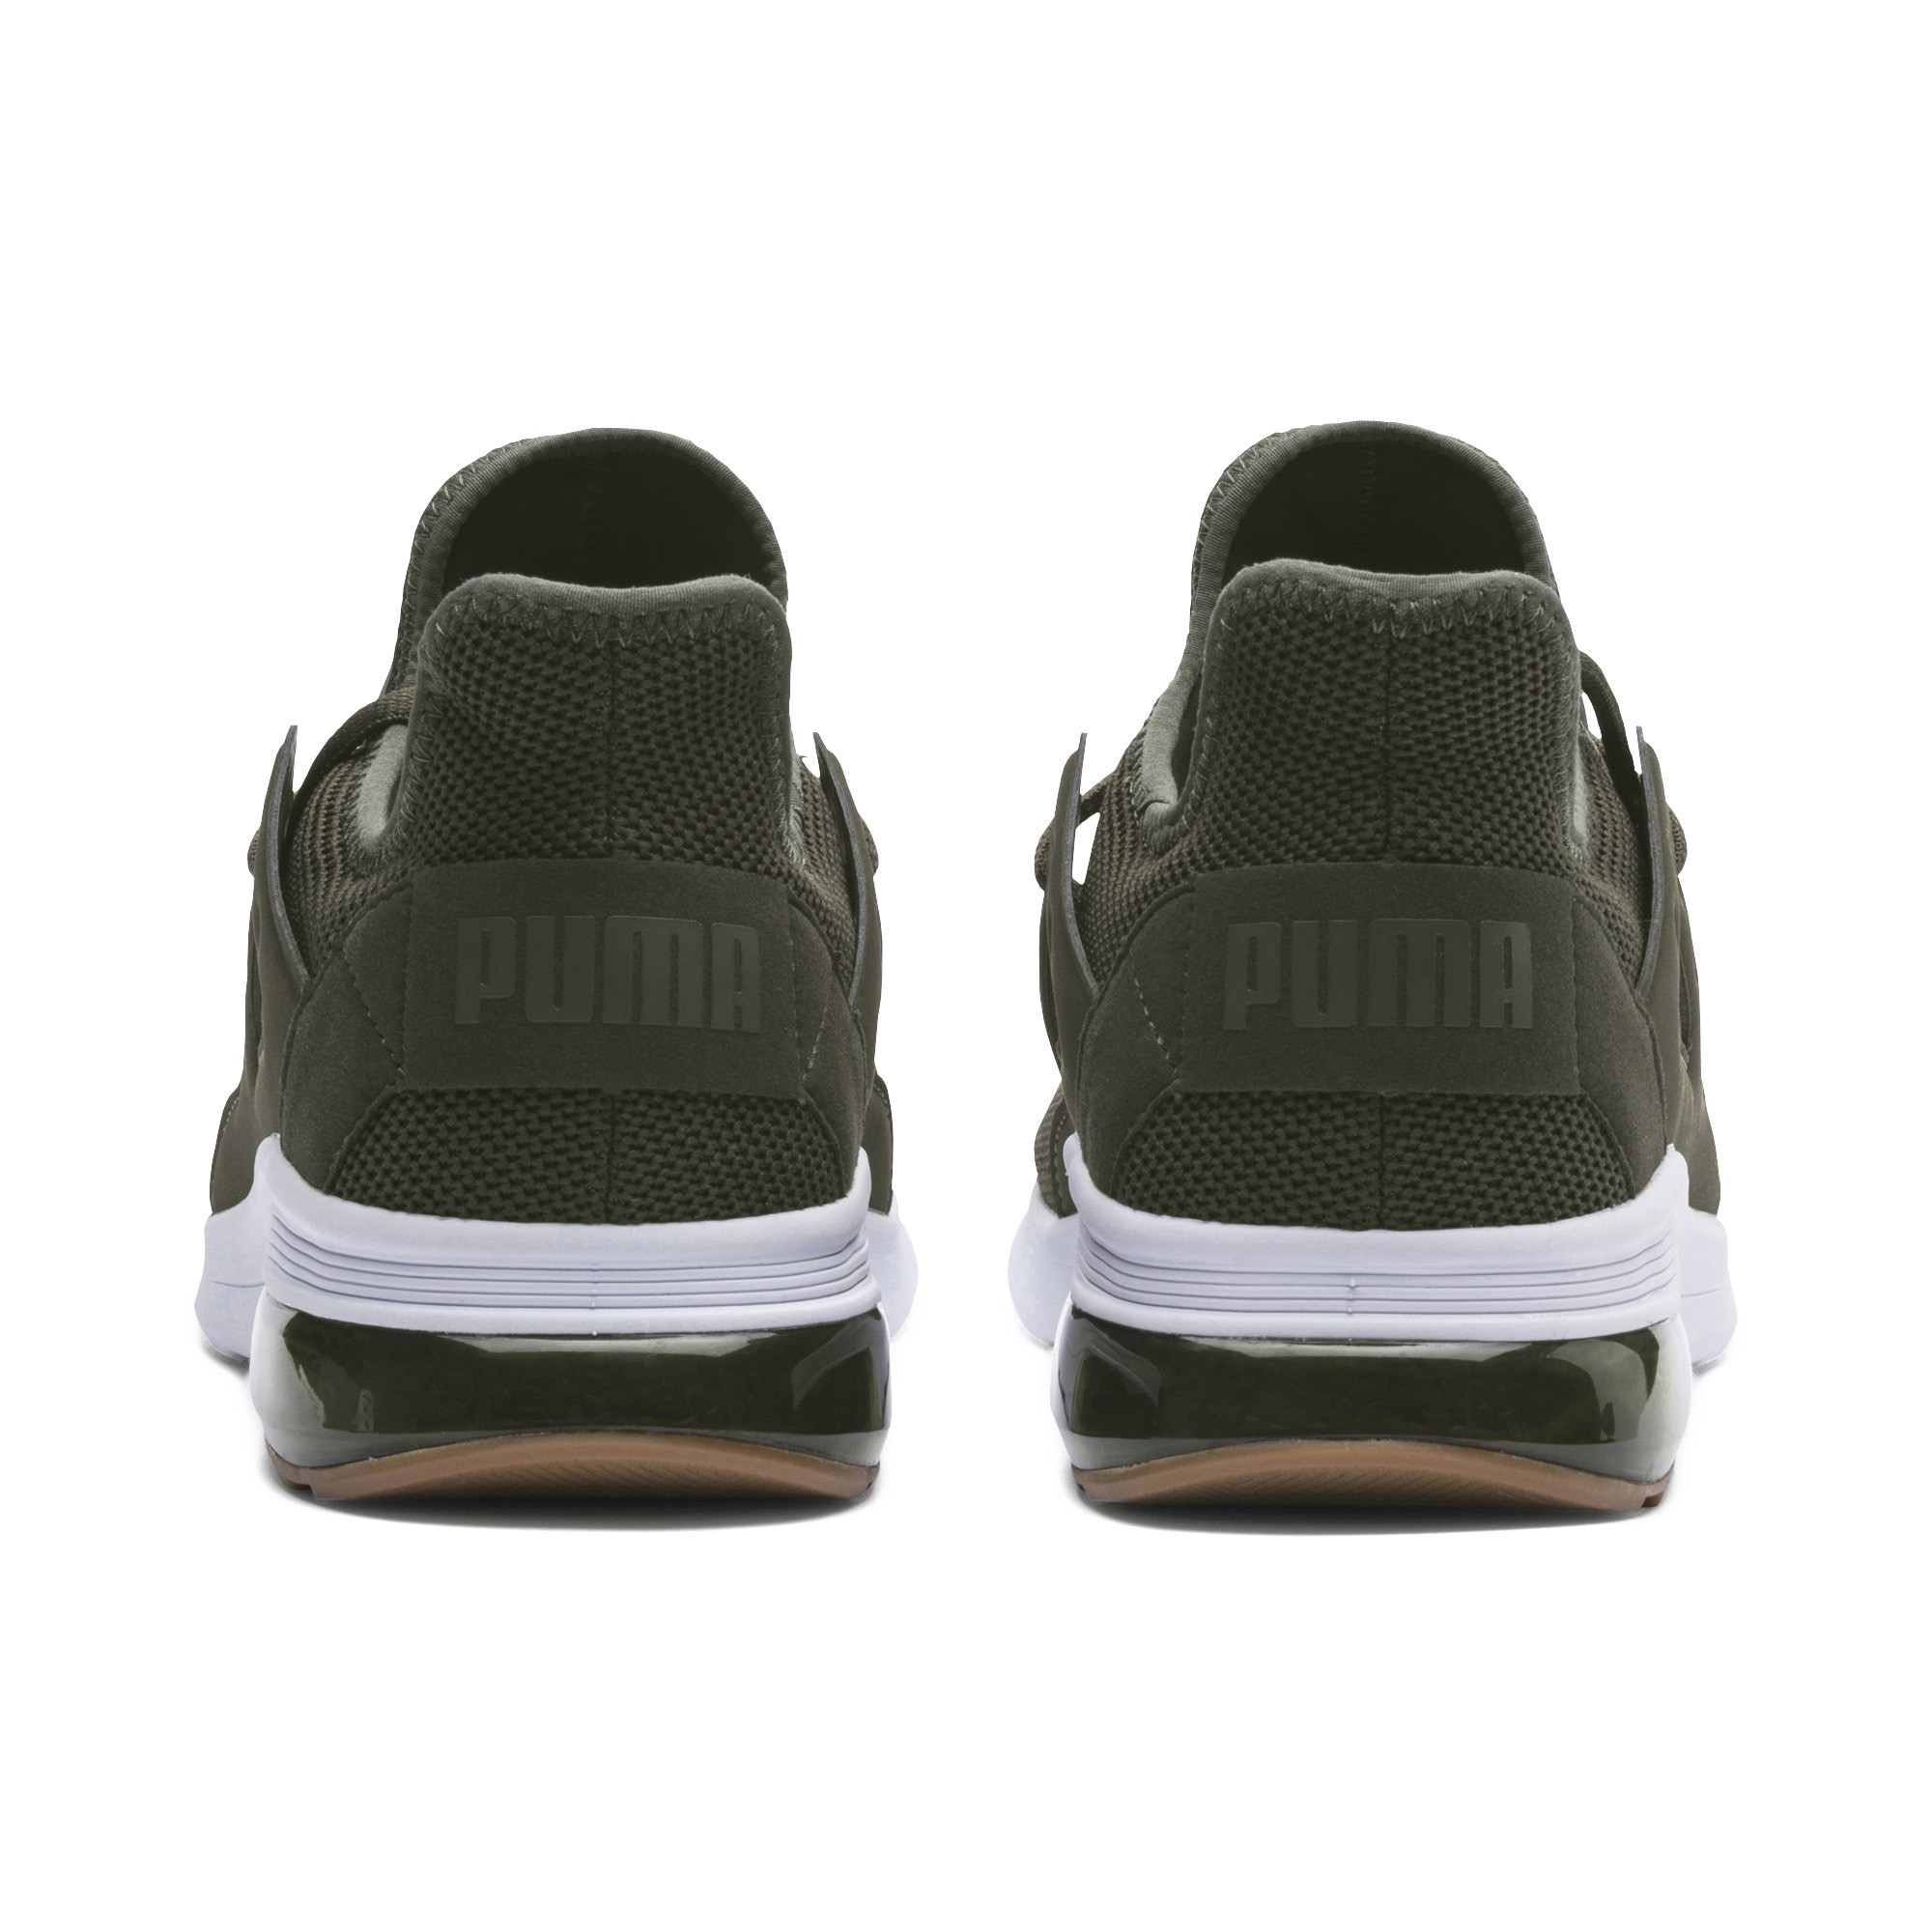 PUMA-Electron-Street-Sneakers-Men-Shoe-Basics thumbnail 3